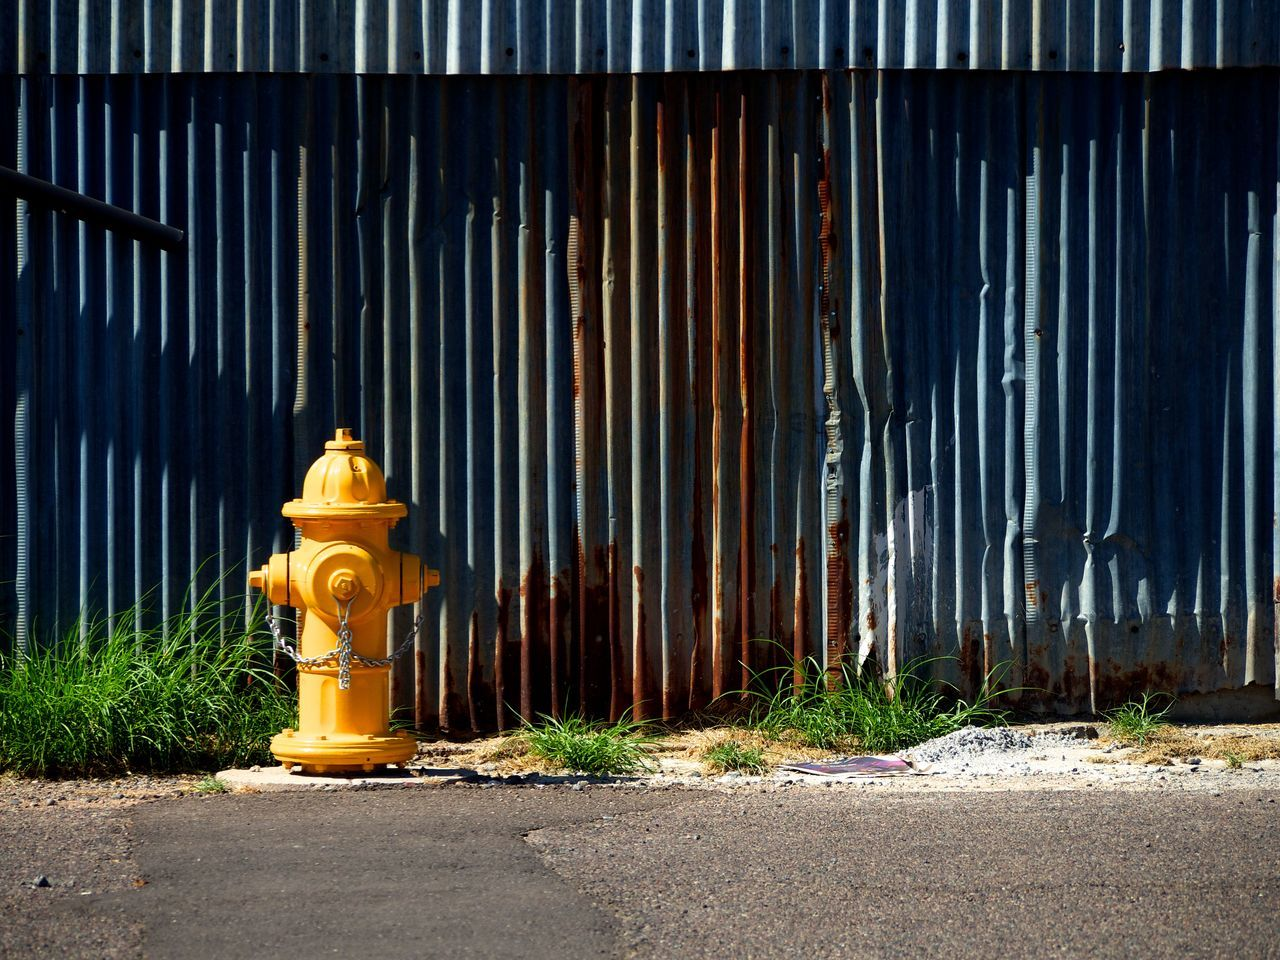 yellow, built structure, architecture, outdoors, no people, industry, building exterior, corrugated iron, day, city